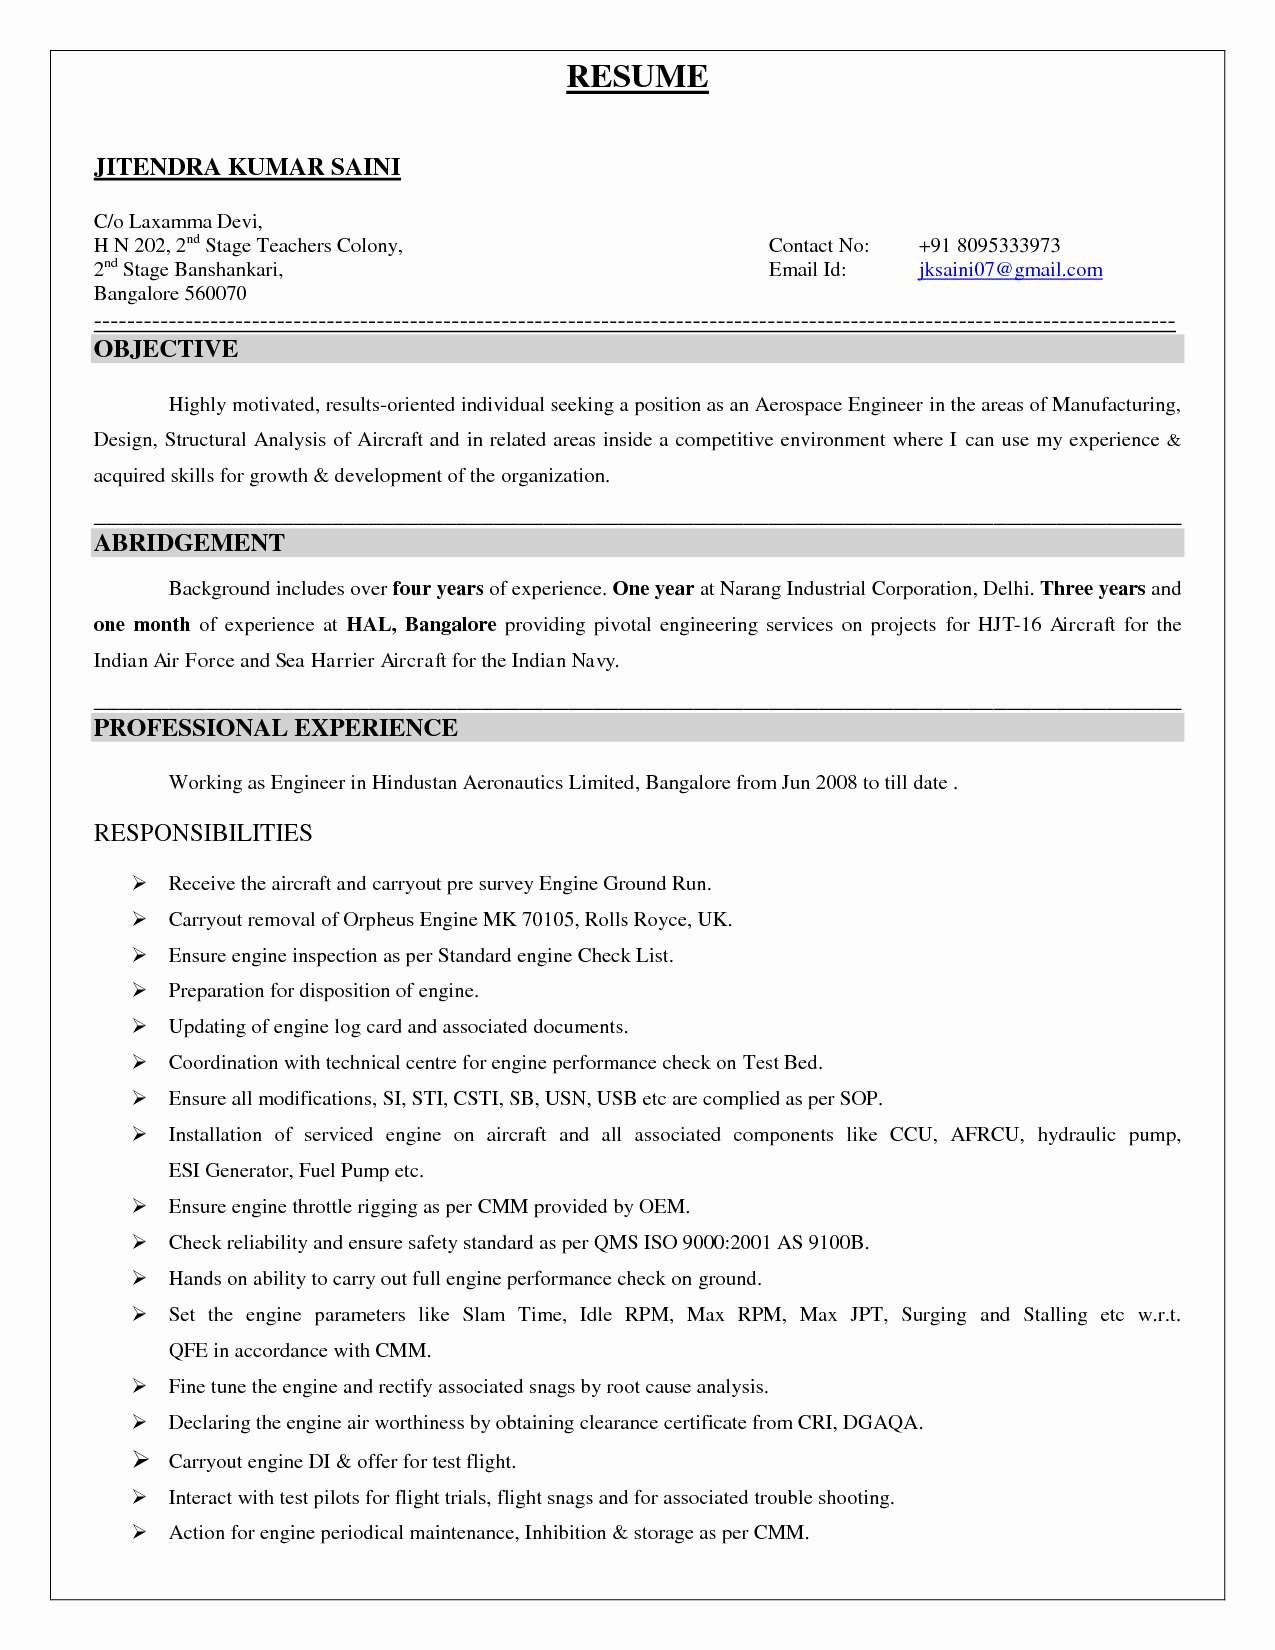 Aerospace Engineer Resume - 17 Aerospace Engineer Resume